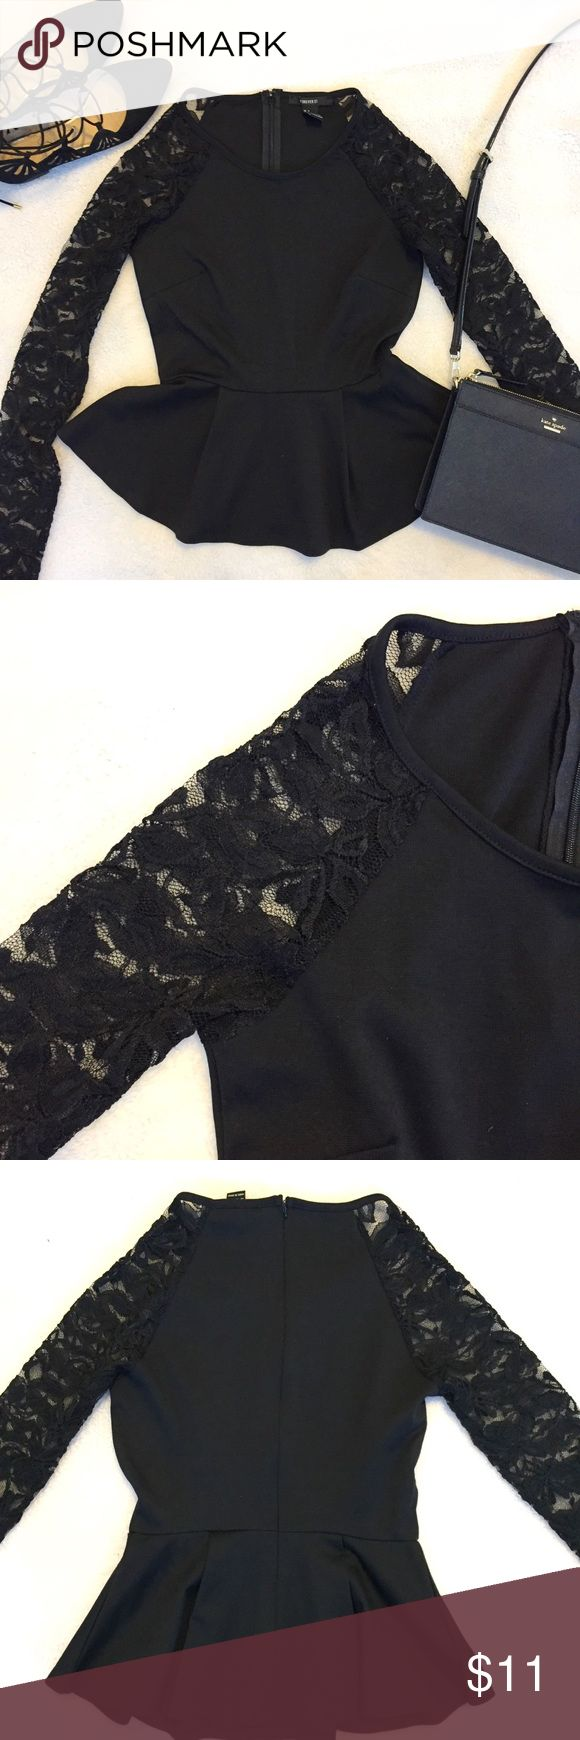 Forever 21 Lace Peplum Top Super cute black peplum top with lace sleeves! The back zips up so it's no problem getting on. Perfect for a night out! Fits like a small/xs. Forever 21 Tops Tees - Long Sleeve